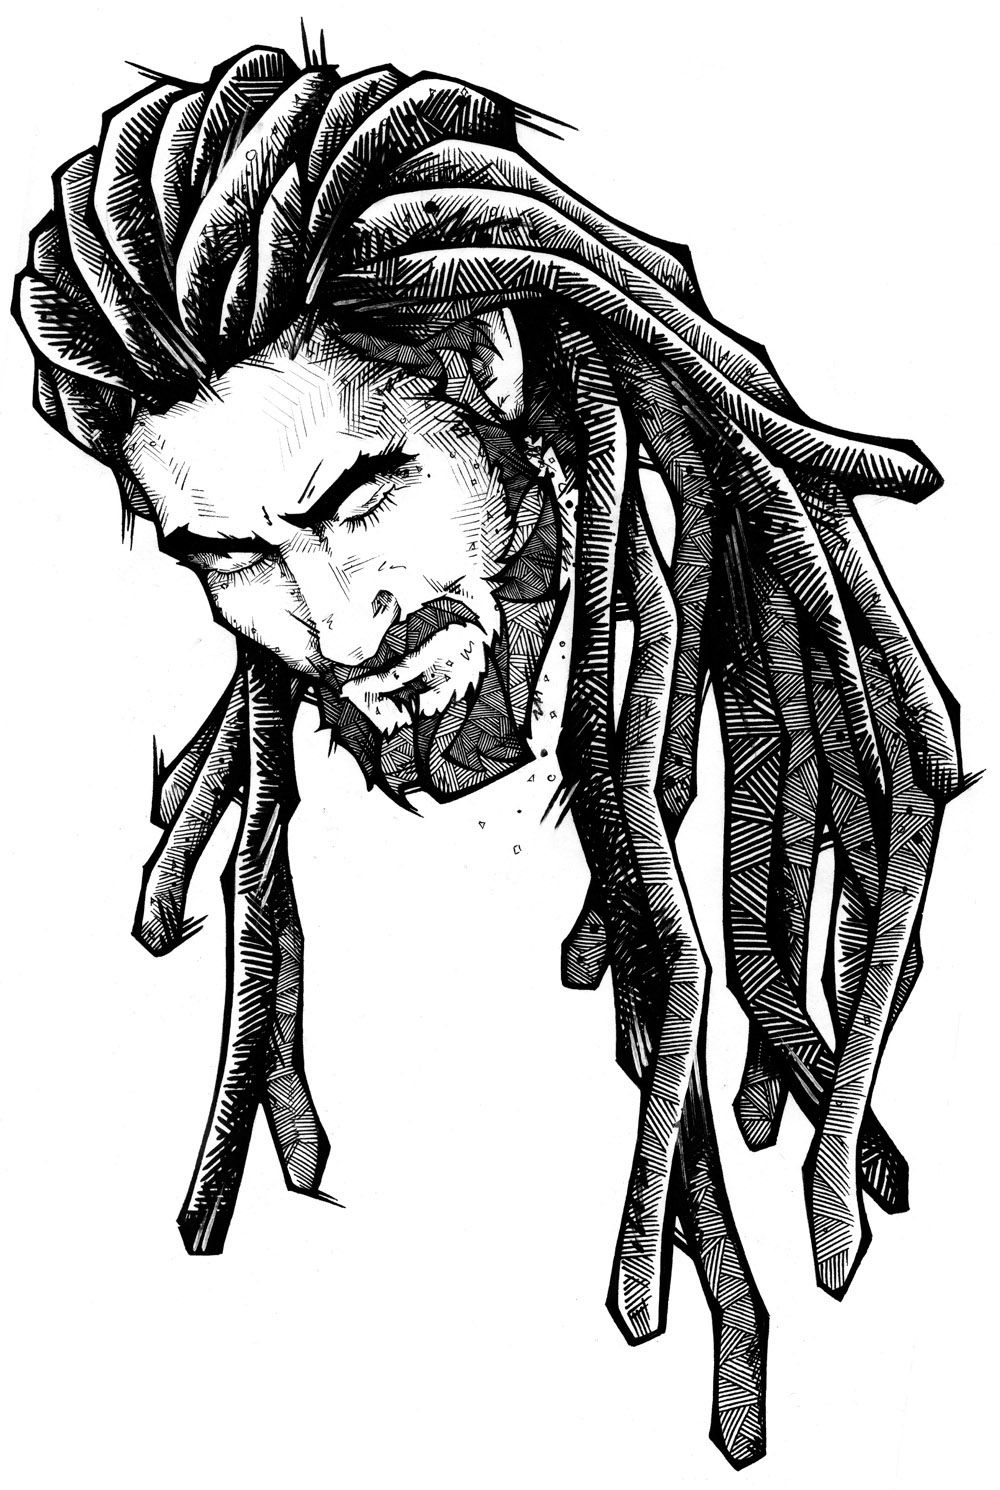 Lion with dreads tattoo drawings - photo#38